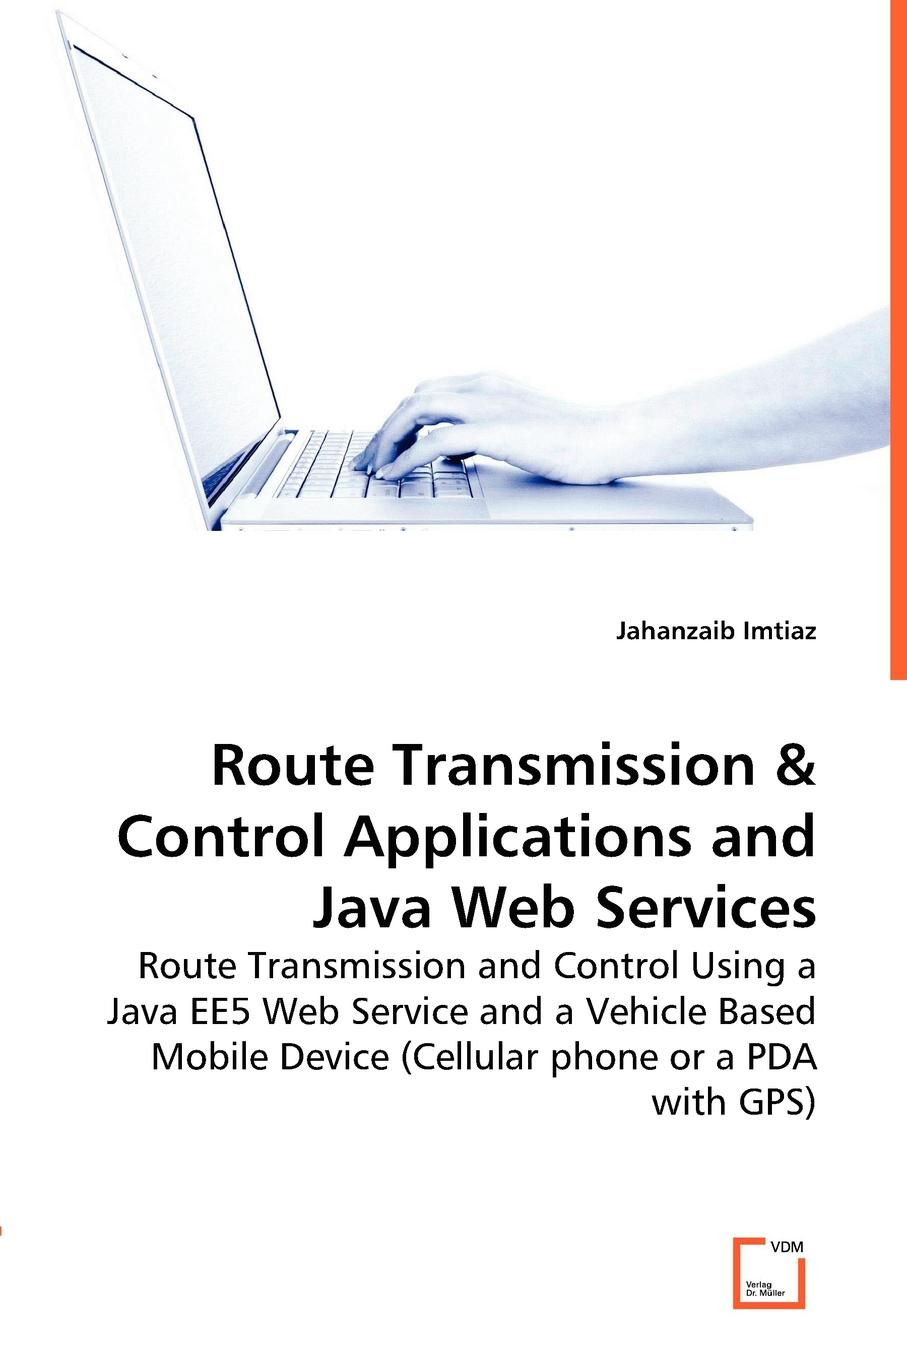 Jahanzaib Imtiaz Route Transmissions & Control Applications and Java Web Services deepak vohra java 7 jax ws web services